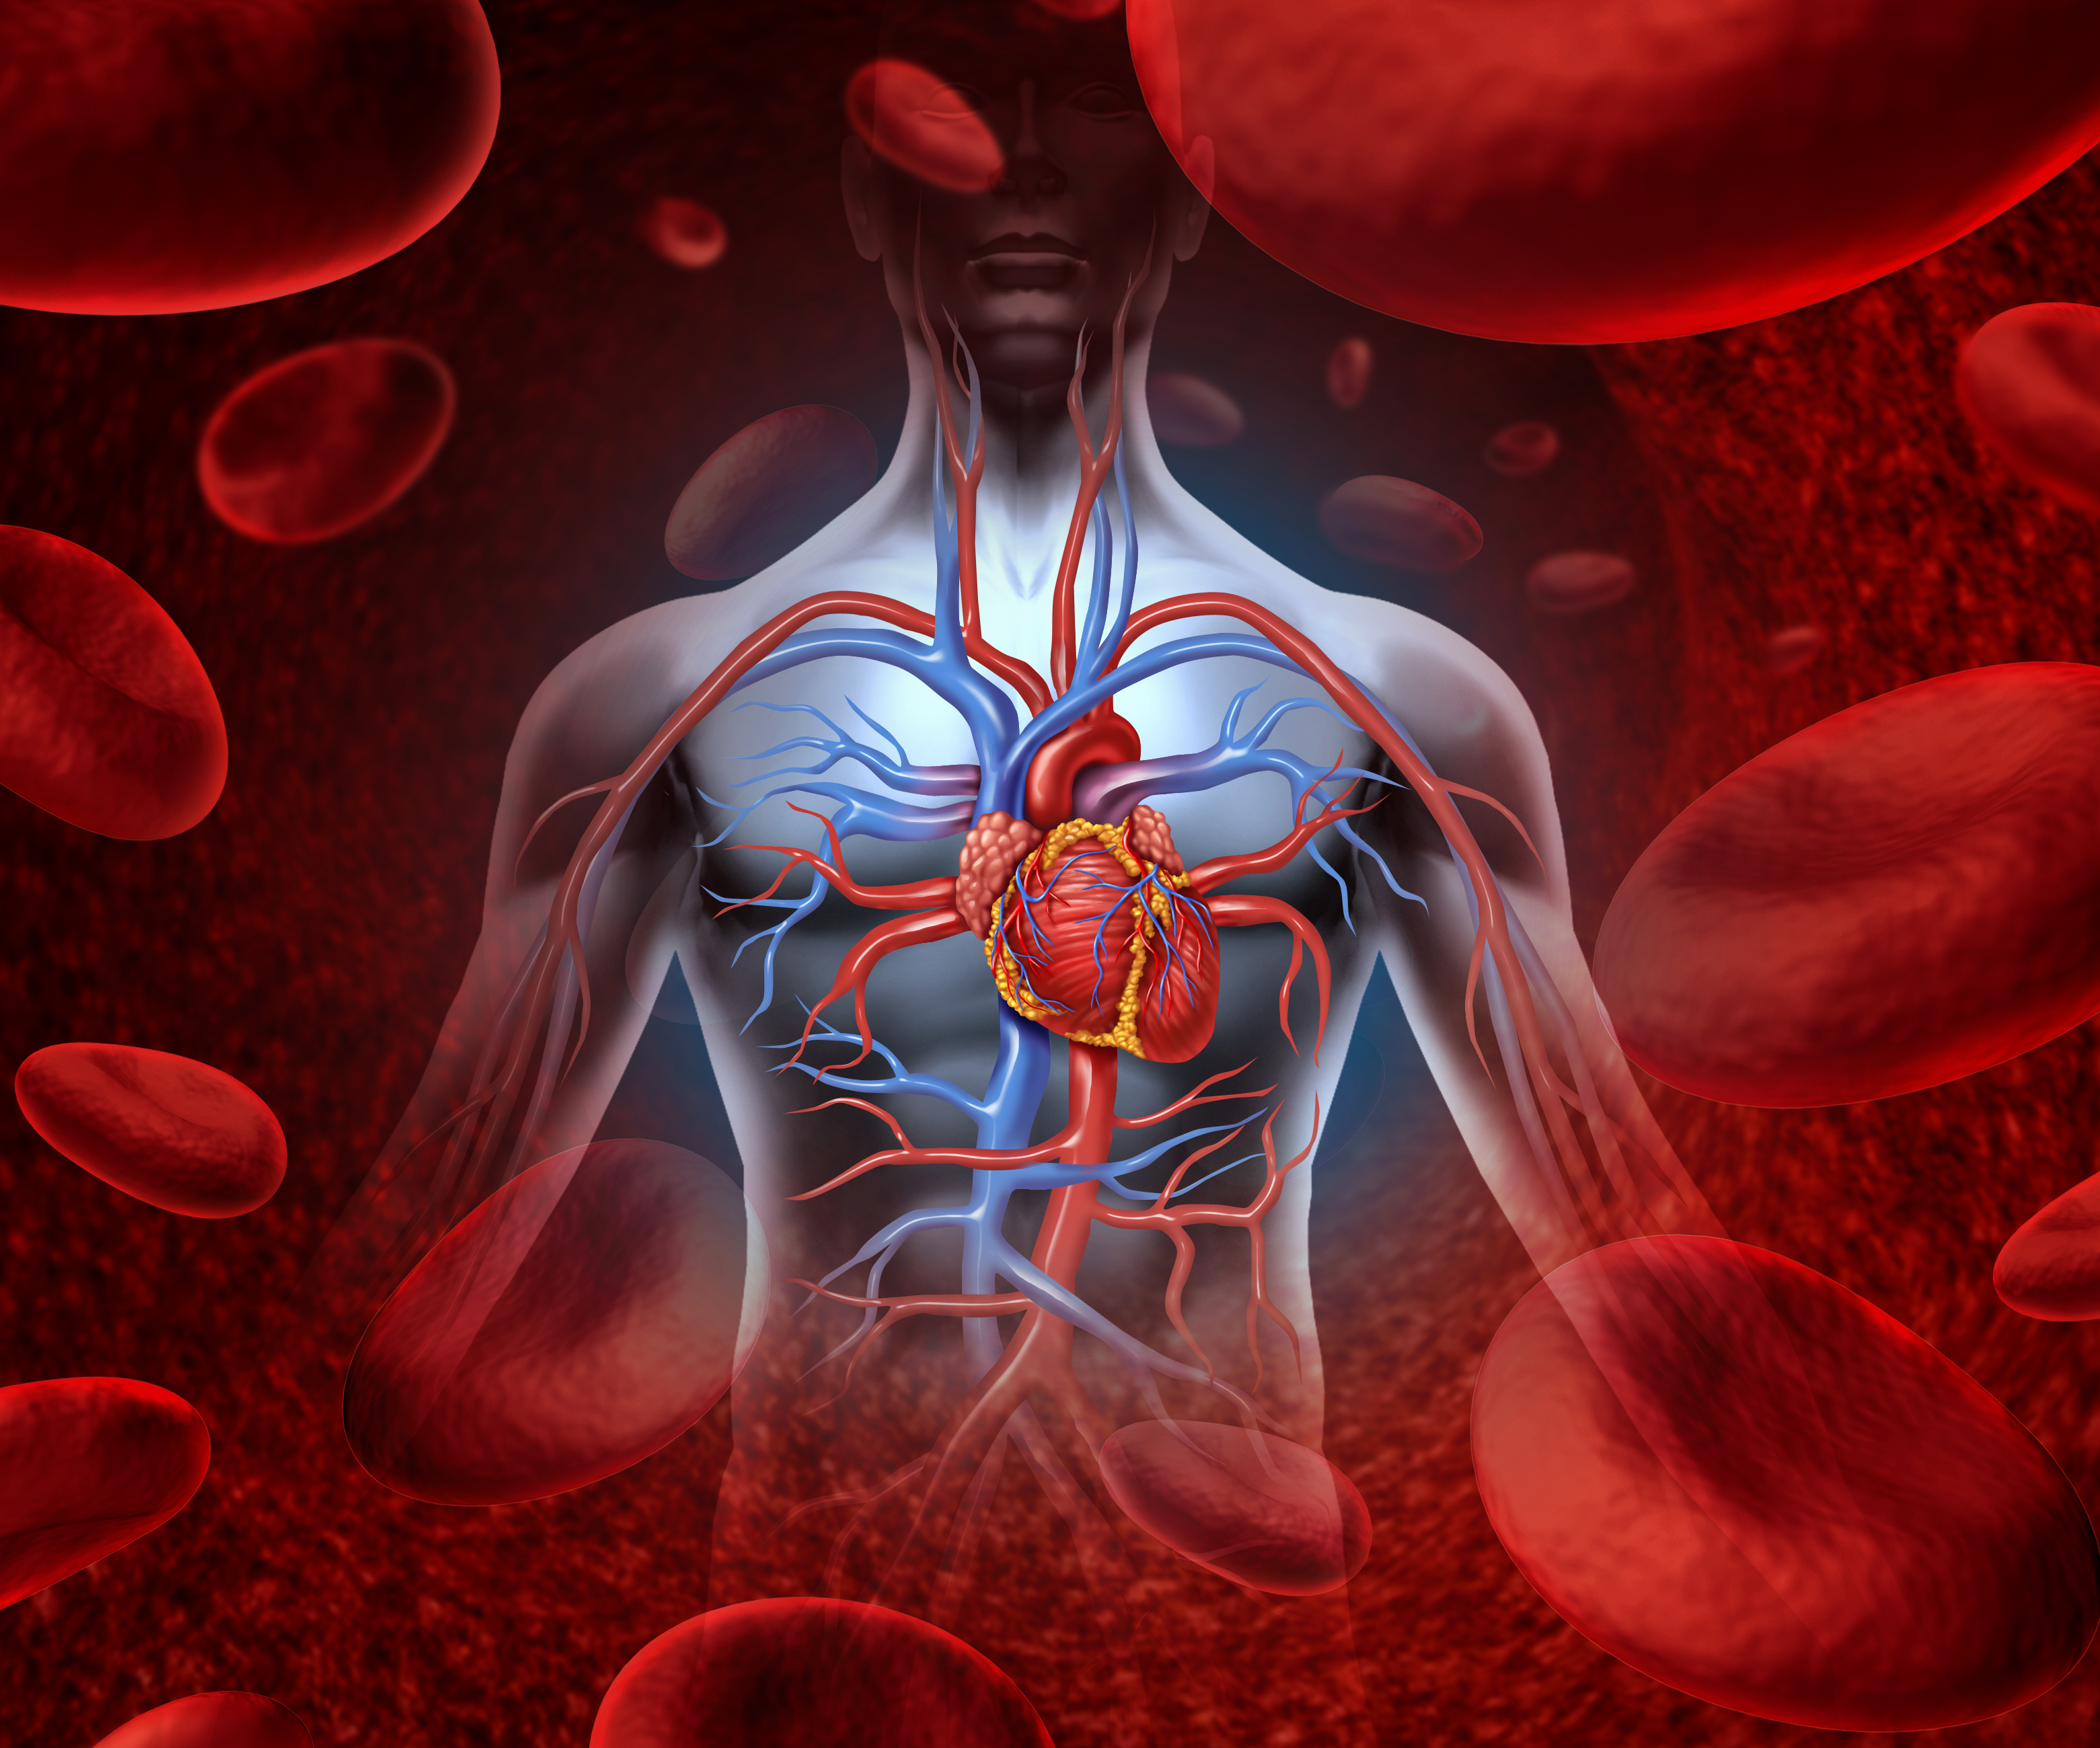 COVID-19 Impact on Cardiology Disease in Healthcare Industry